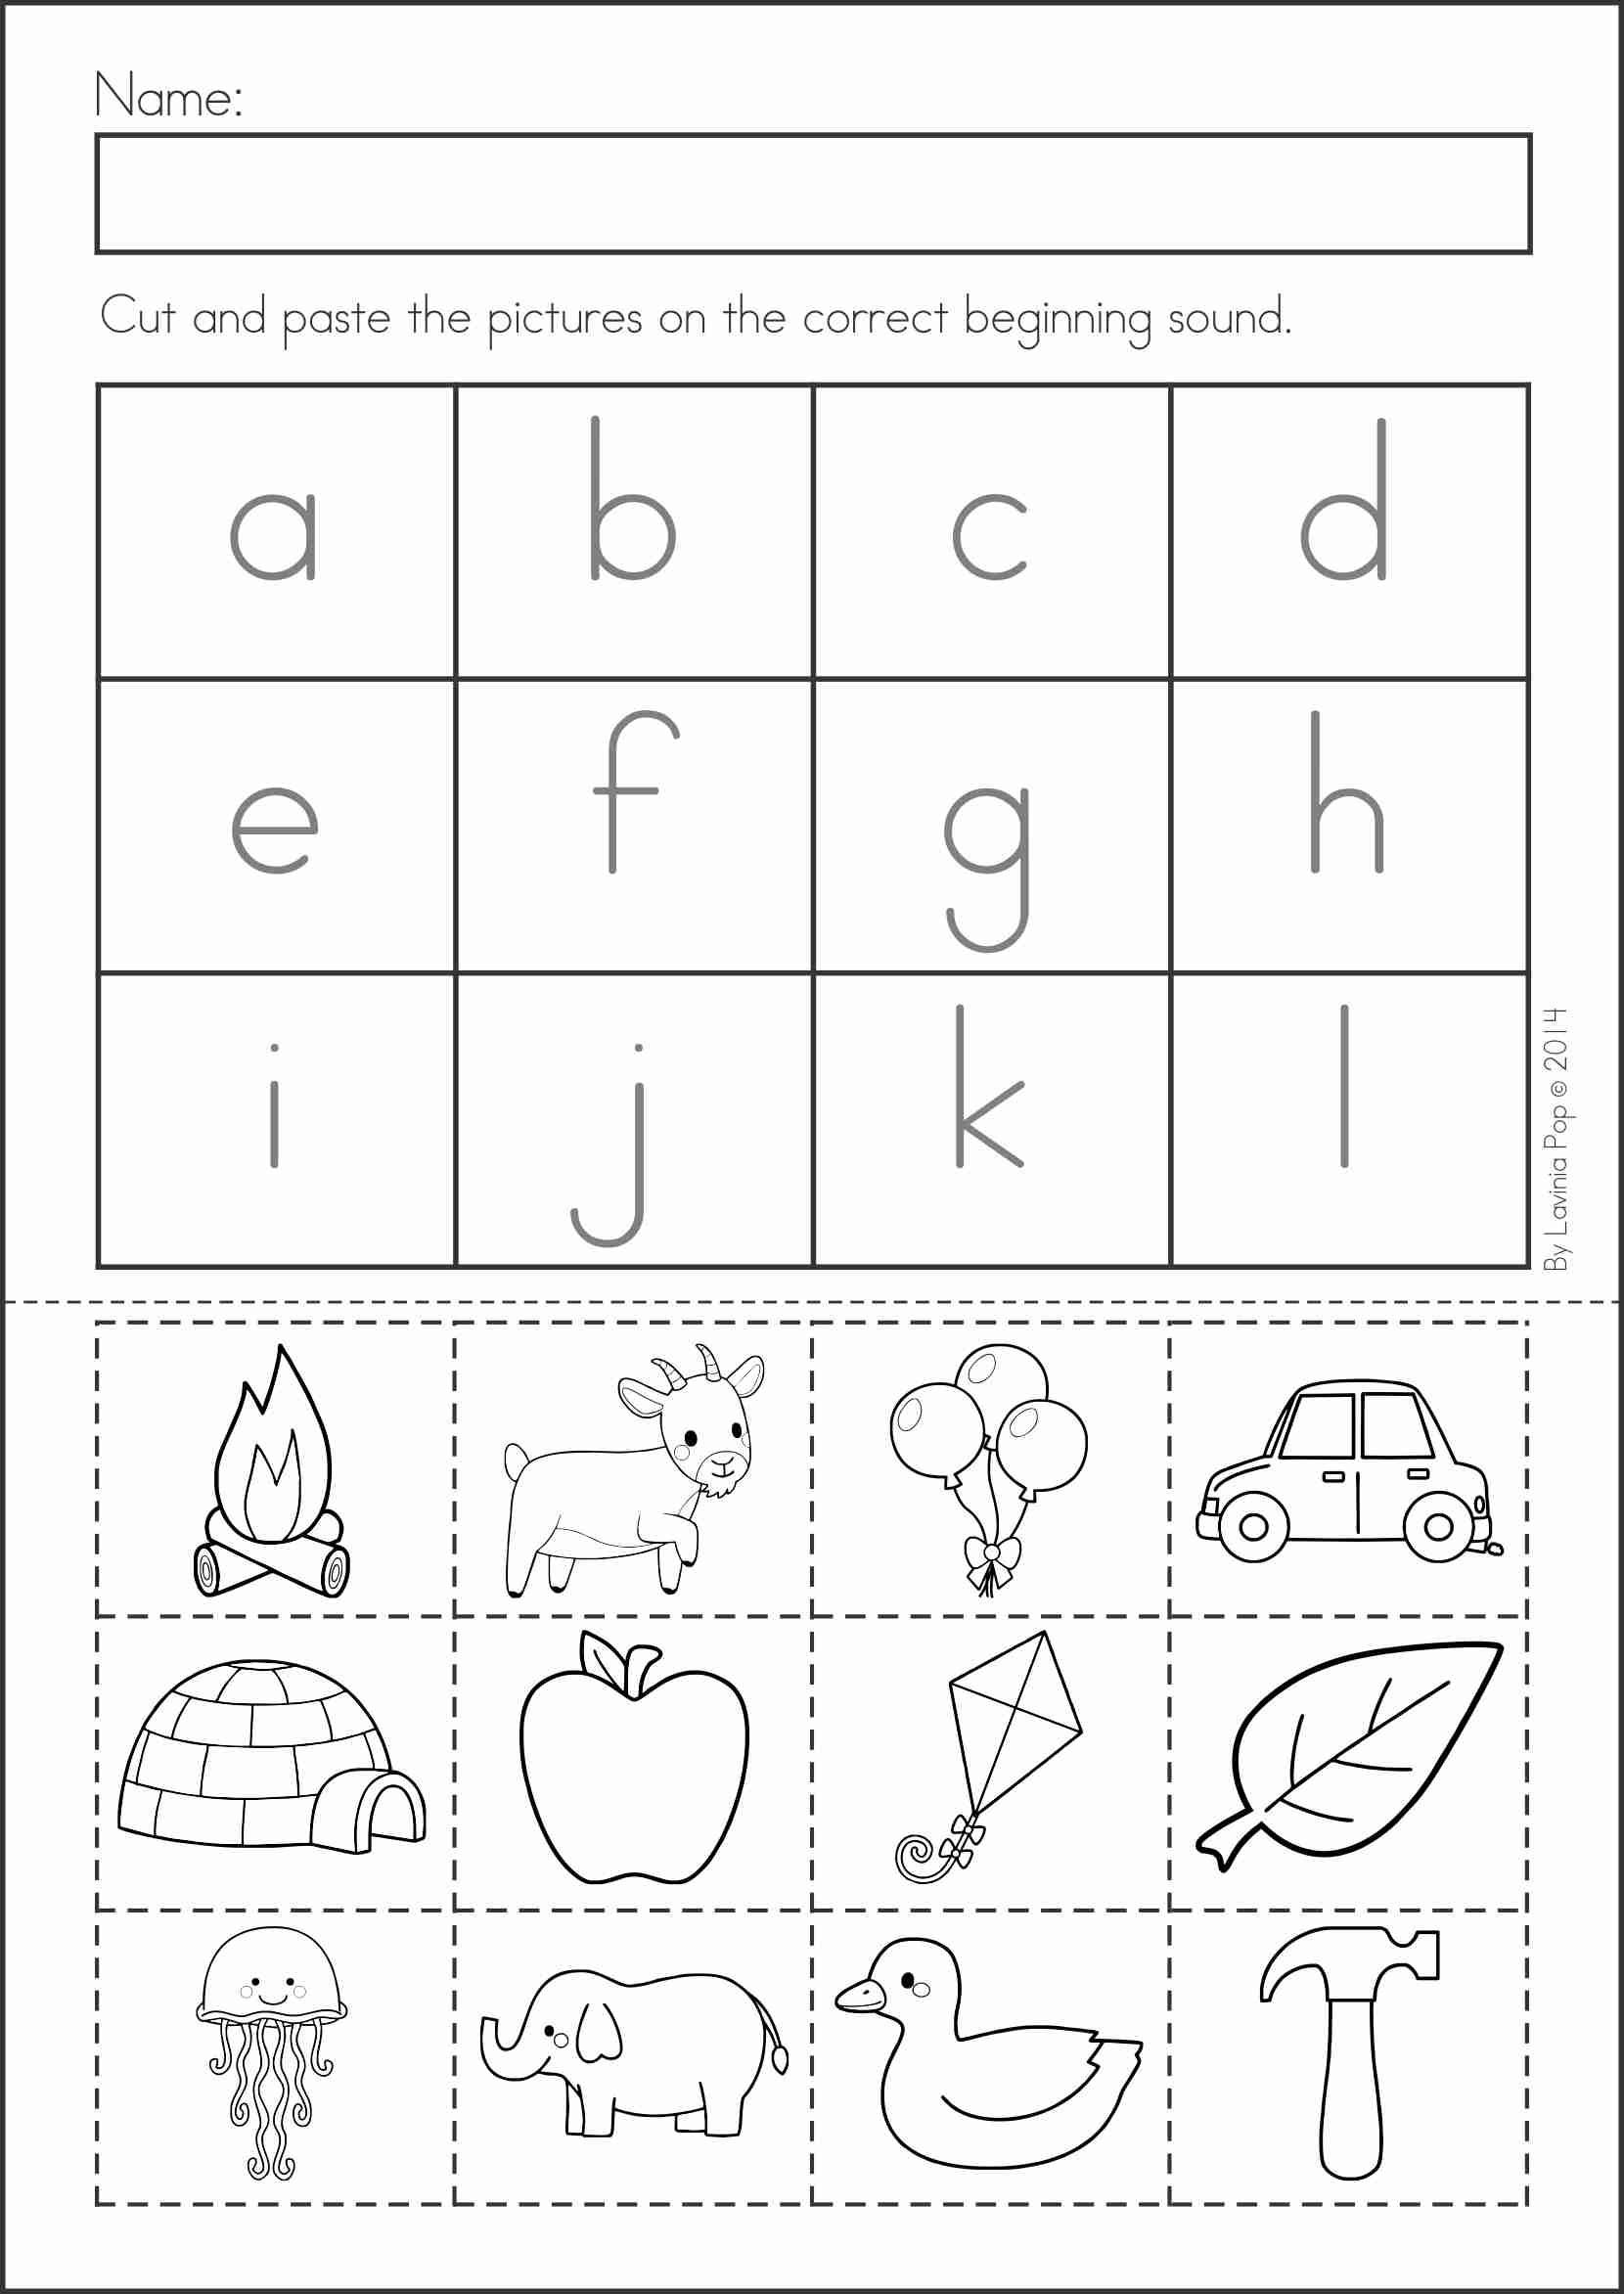 Free Printable Cut And Paste Worksheets For Kindergarten